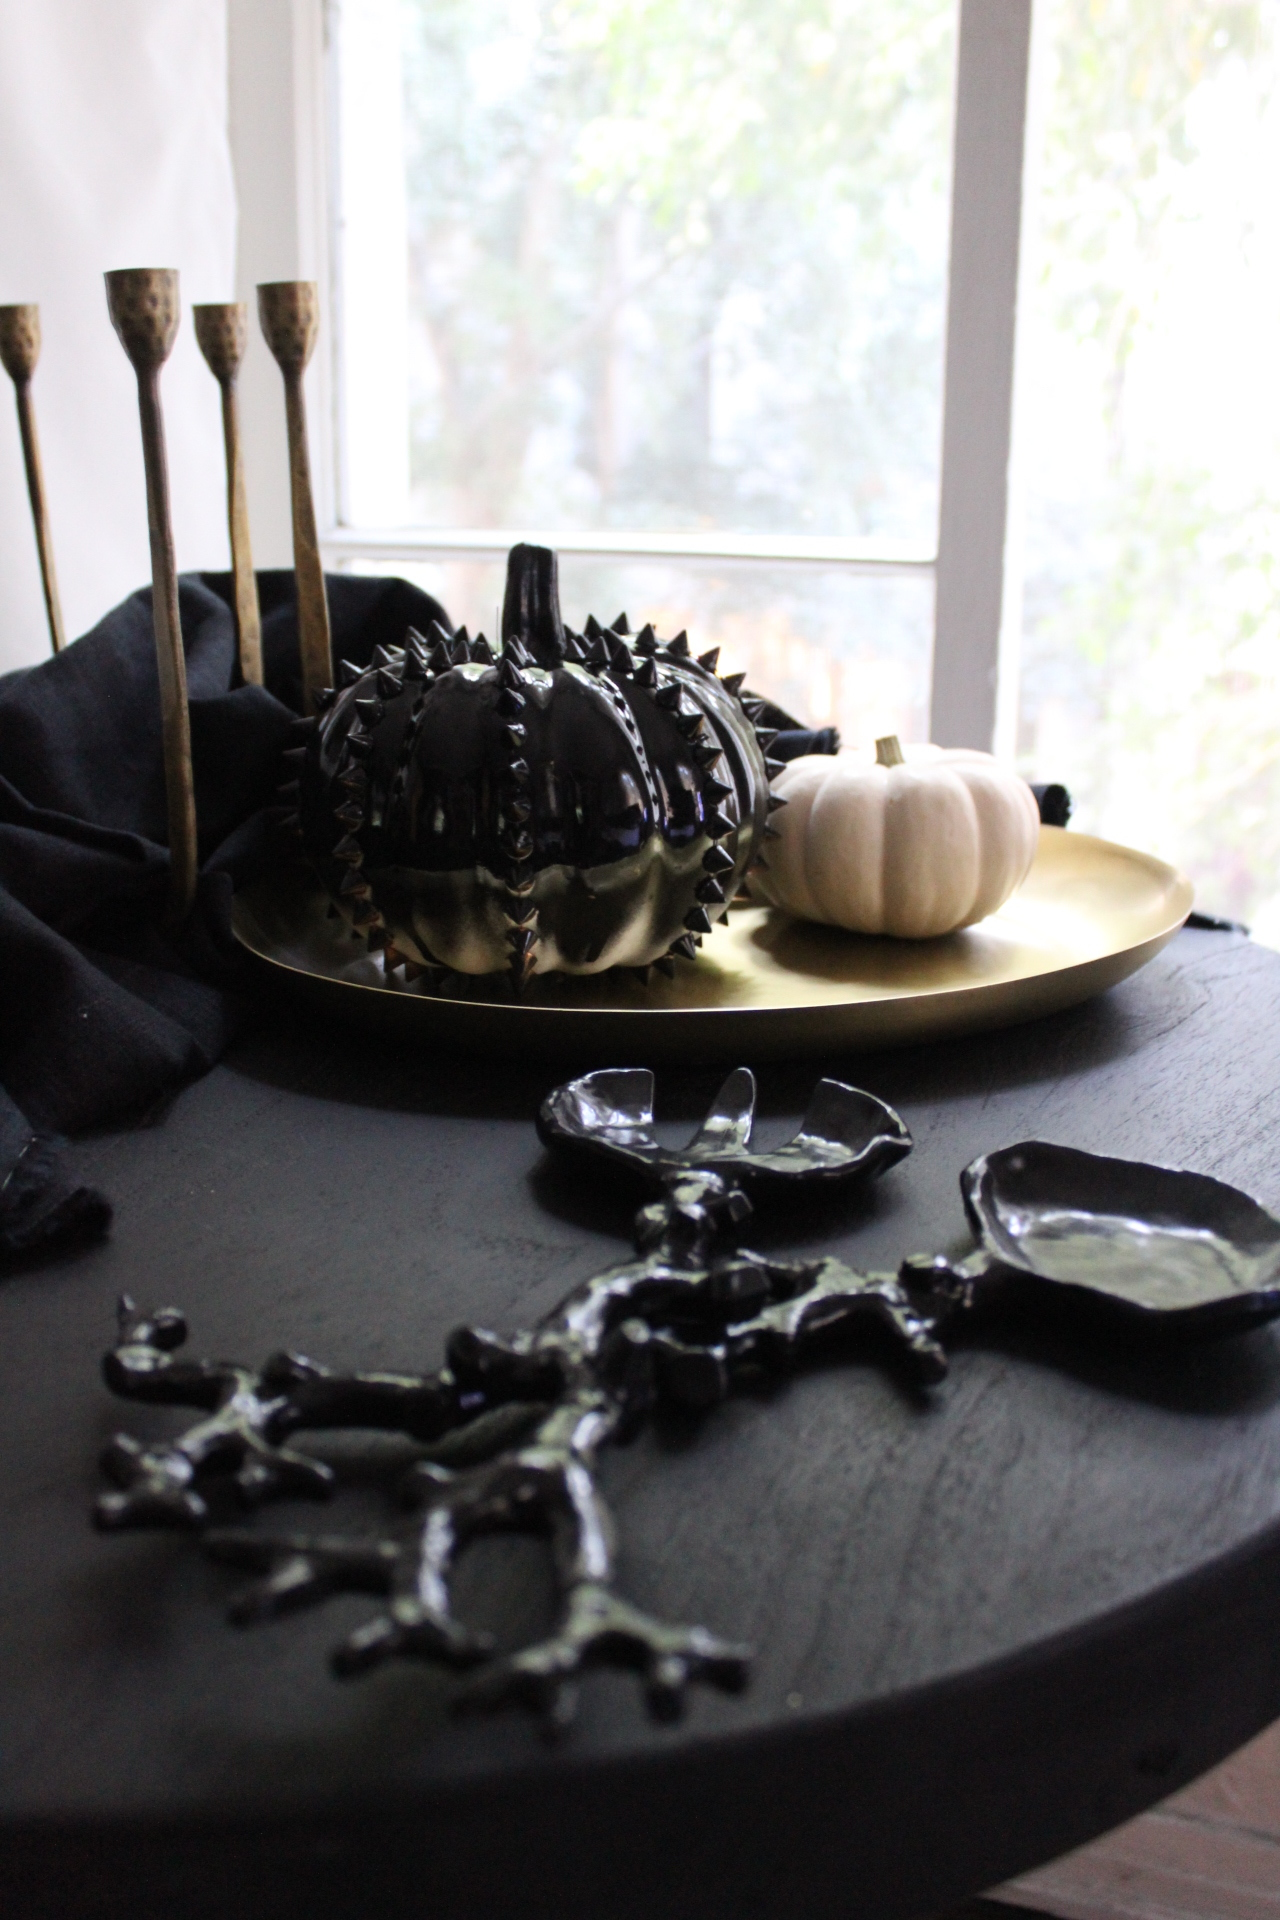 HIGH GLOSS BLACK...I love to repurpose my everyday serving and decor for holidays versus buying all new. For those of us in the city with limited storage, this can be a necessity.I was so luck to find these black coral salad servers in the Hamptons at my favorite flower and gift shop, Flowers by Rori. I used them all summer and now can turn them into creepy branch servers for Halloween! The high gloss coordinates with the spray paint pumpkins just perfectly.